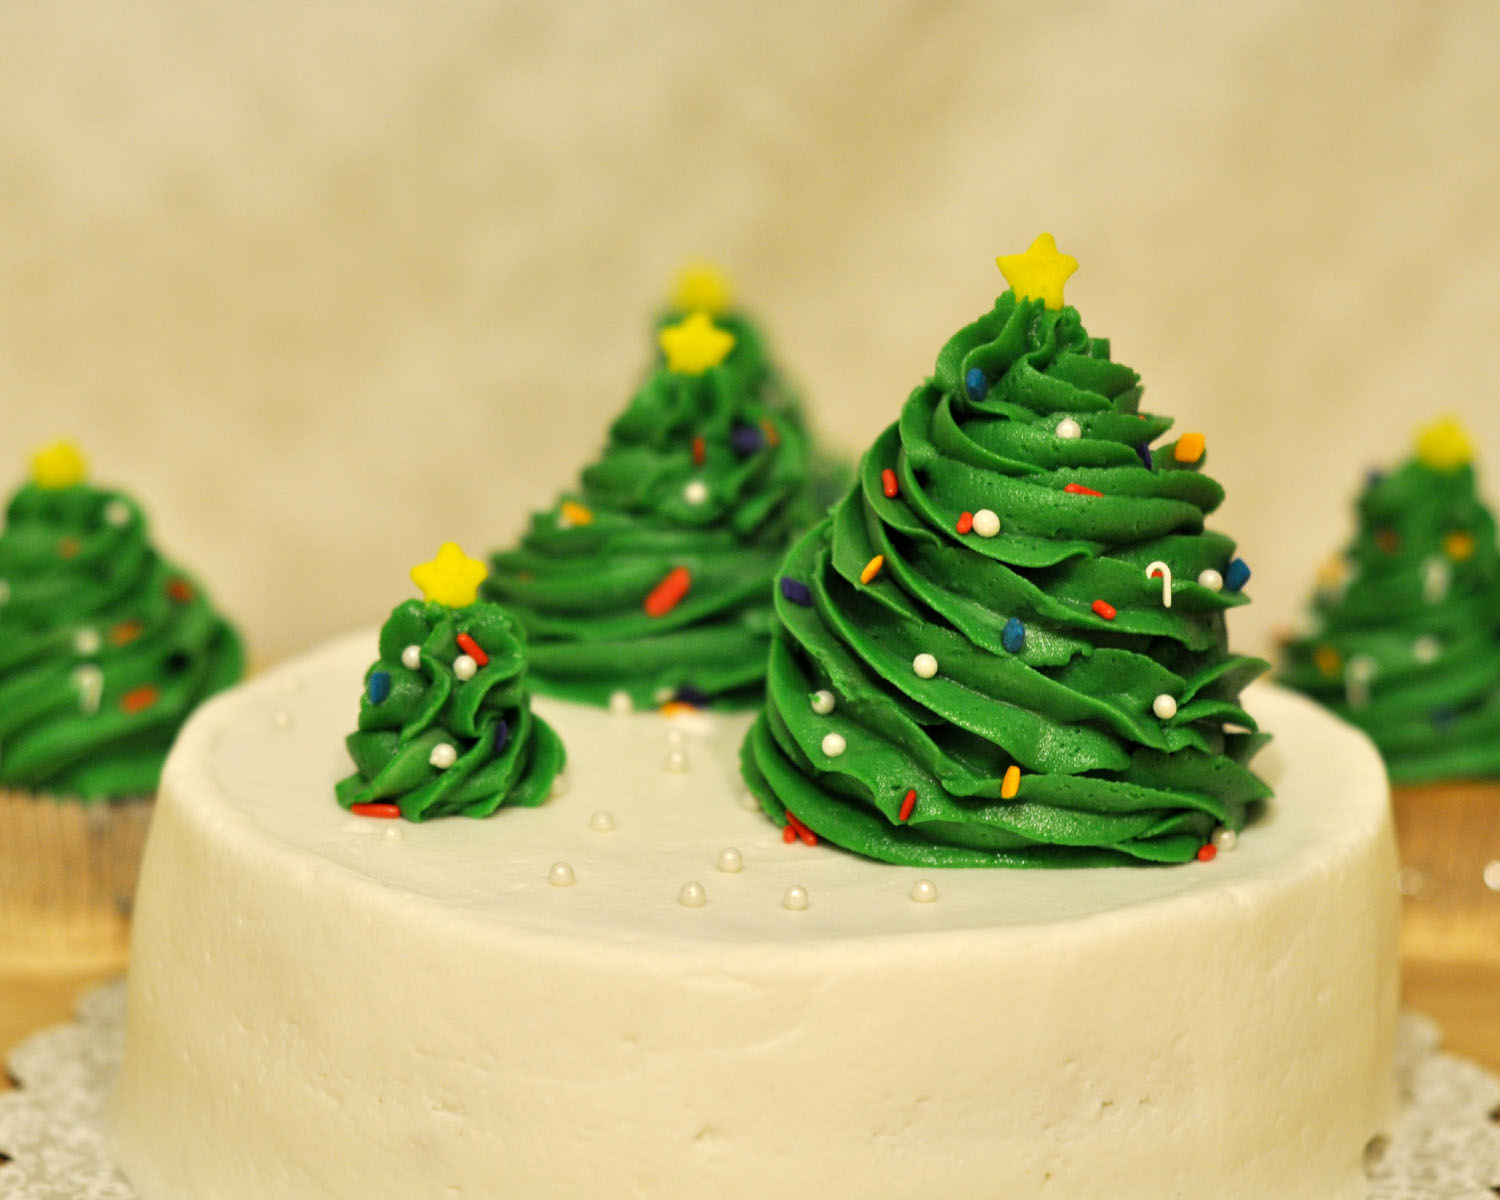 Beki Cook s Cake Blog: Simple Christmas Cake